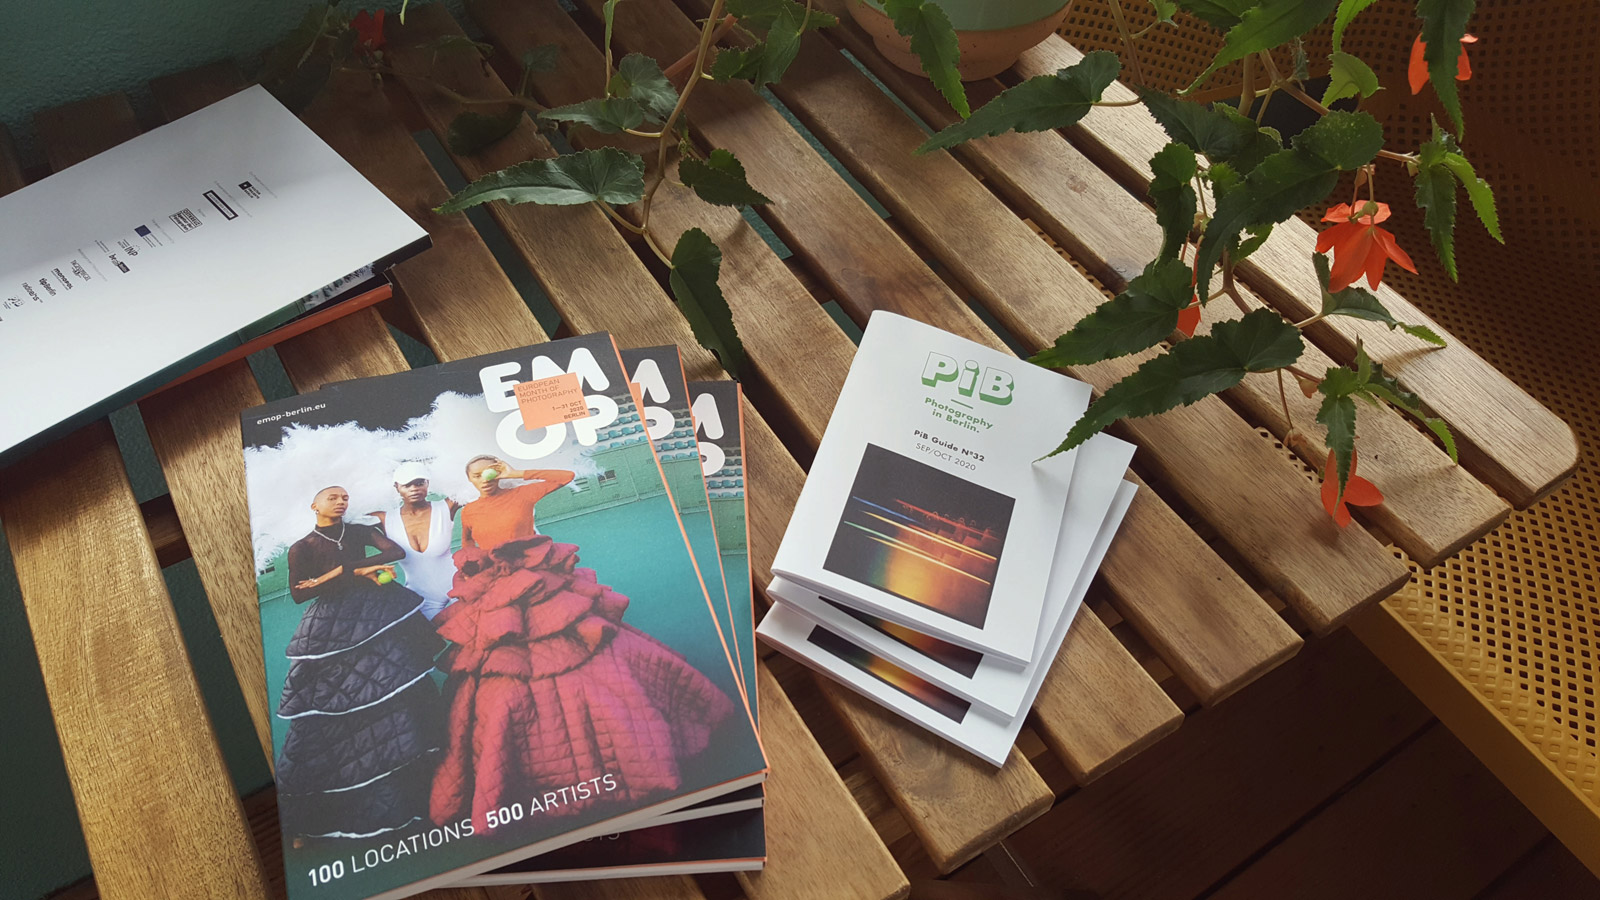 On the left: EMOP Berlin 2020 catalogue © Kulturprojekte Berlin   On the right: PiB Guide Nº32 SEP/OCT 2020 © PiB Photography in Berlin